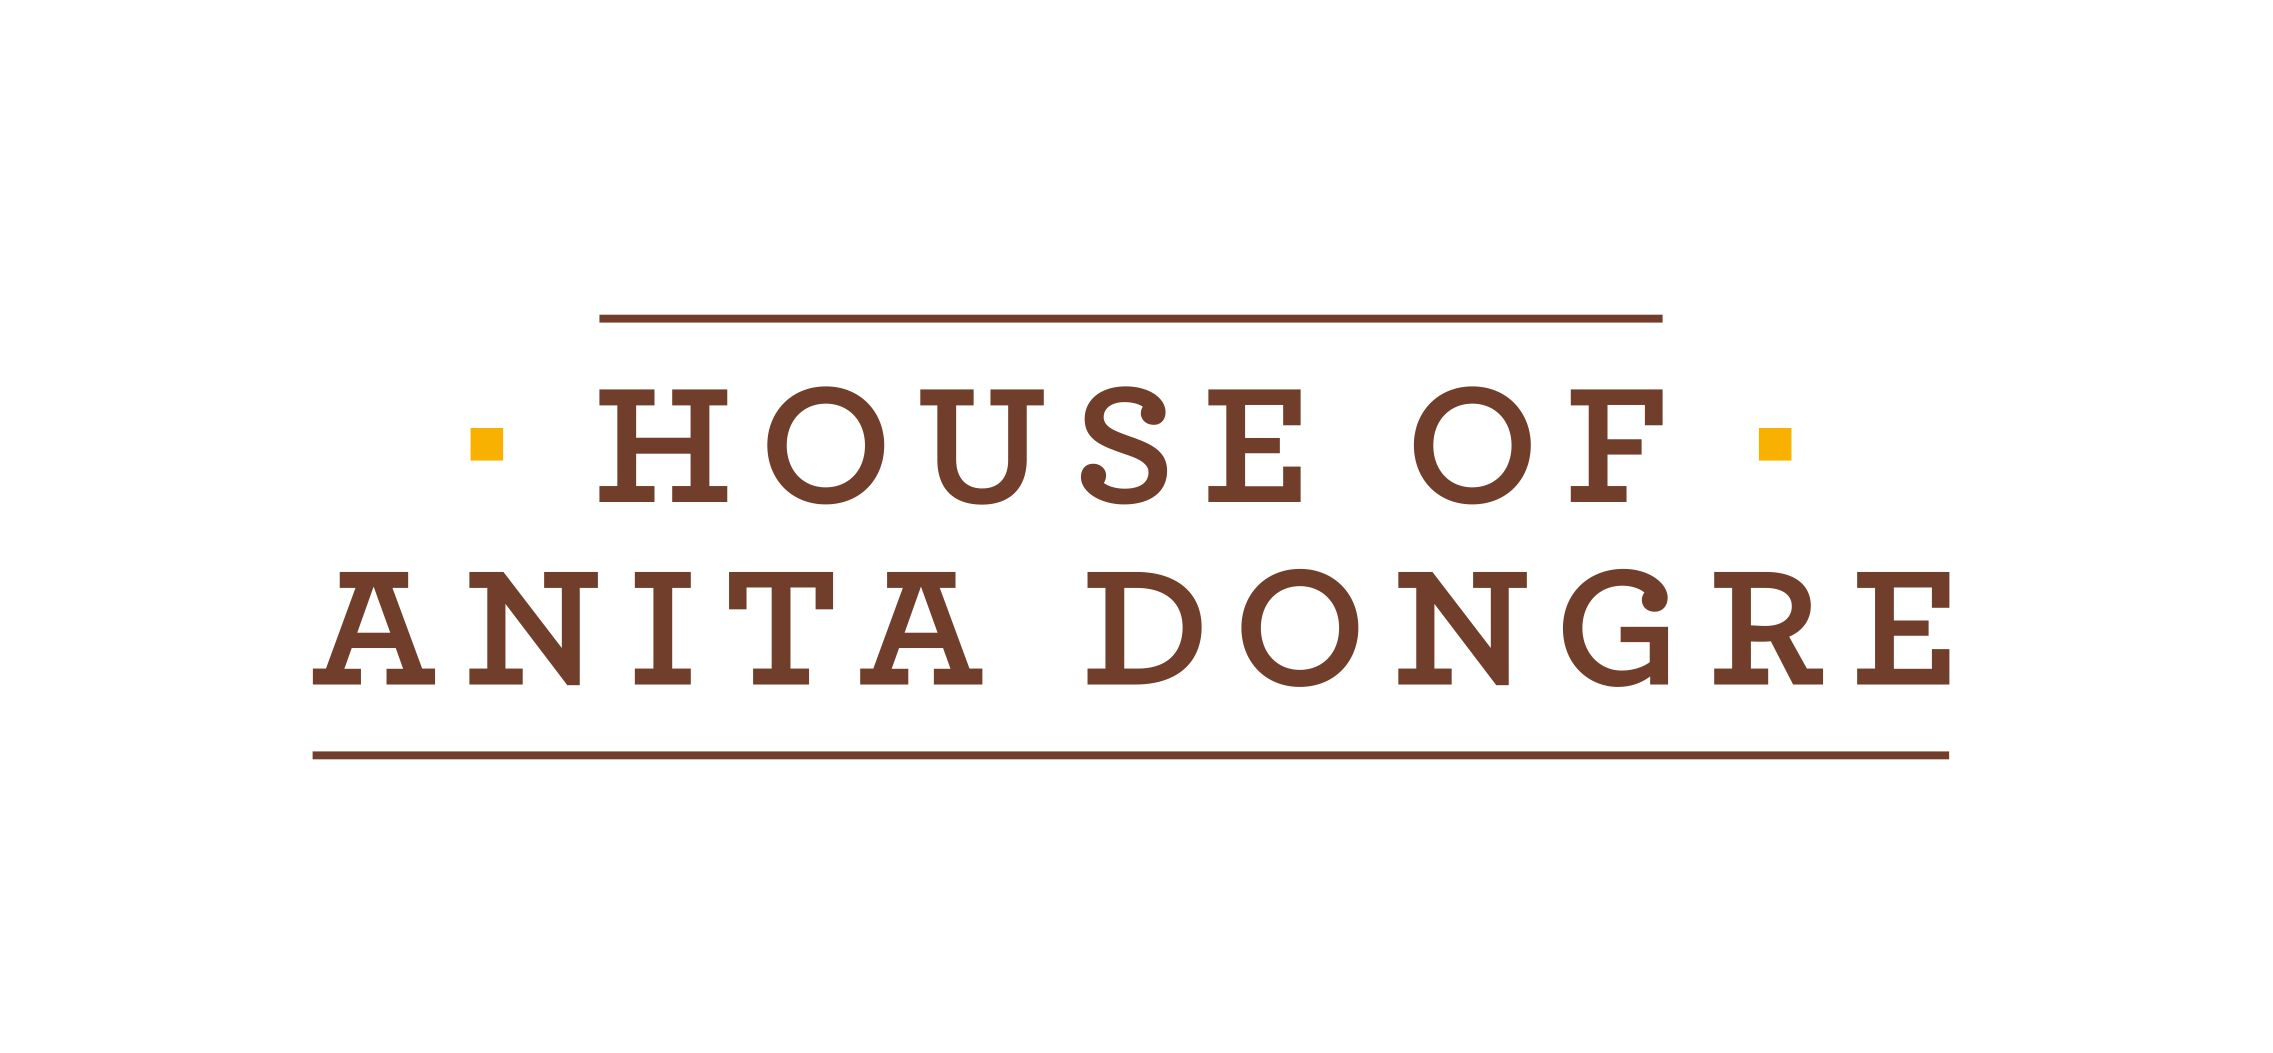 House of Anita Dongre